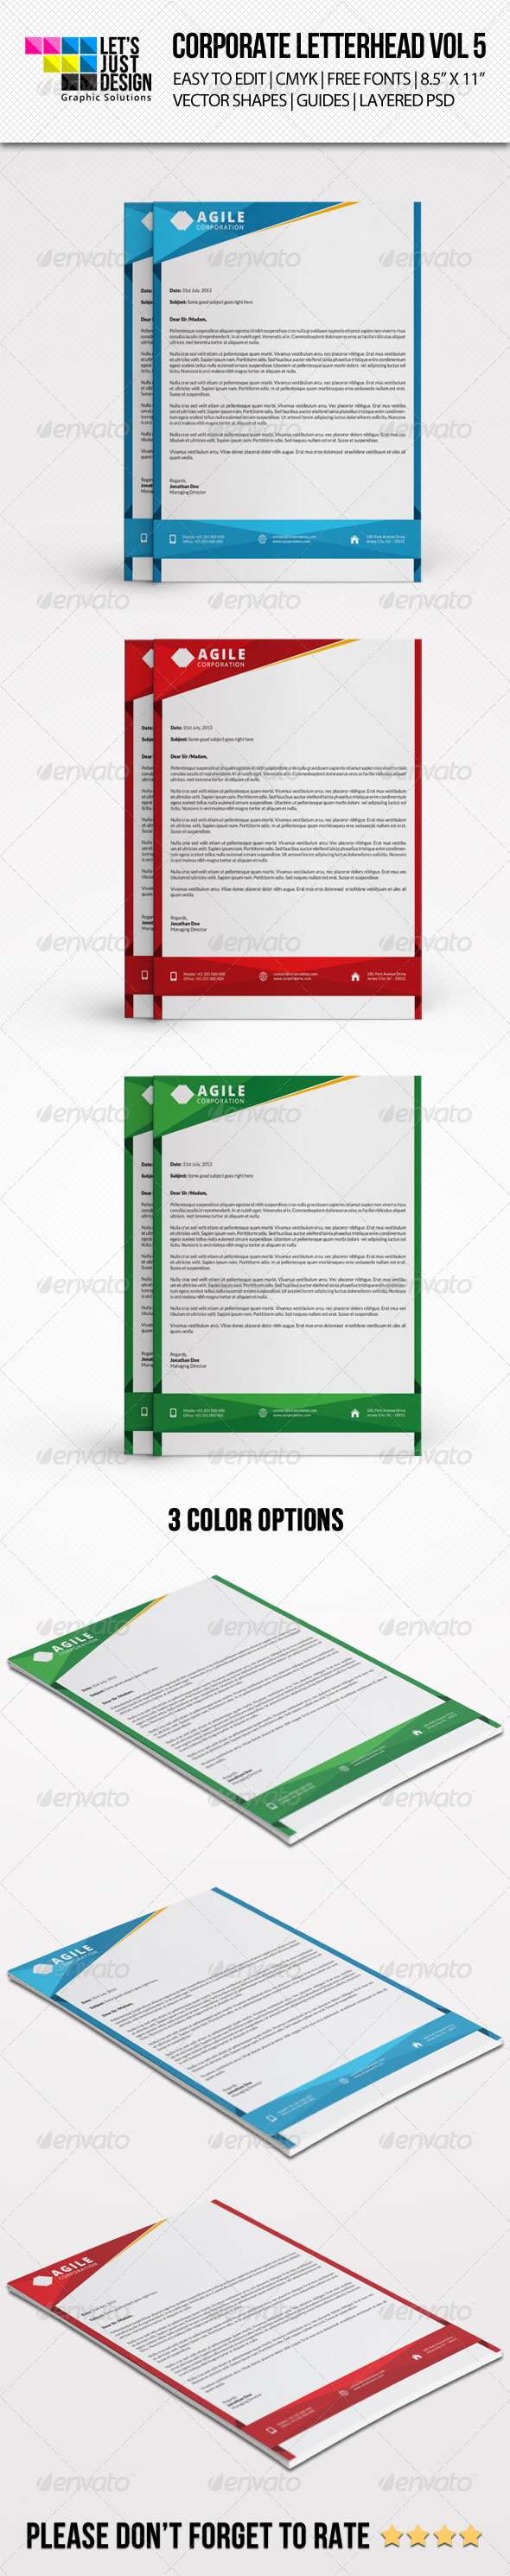 GraphicRiver Corporate Letterhead Vol 5 8494033